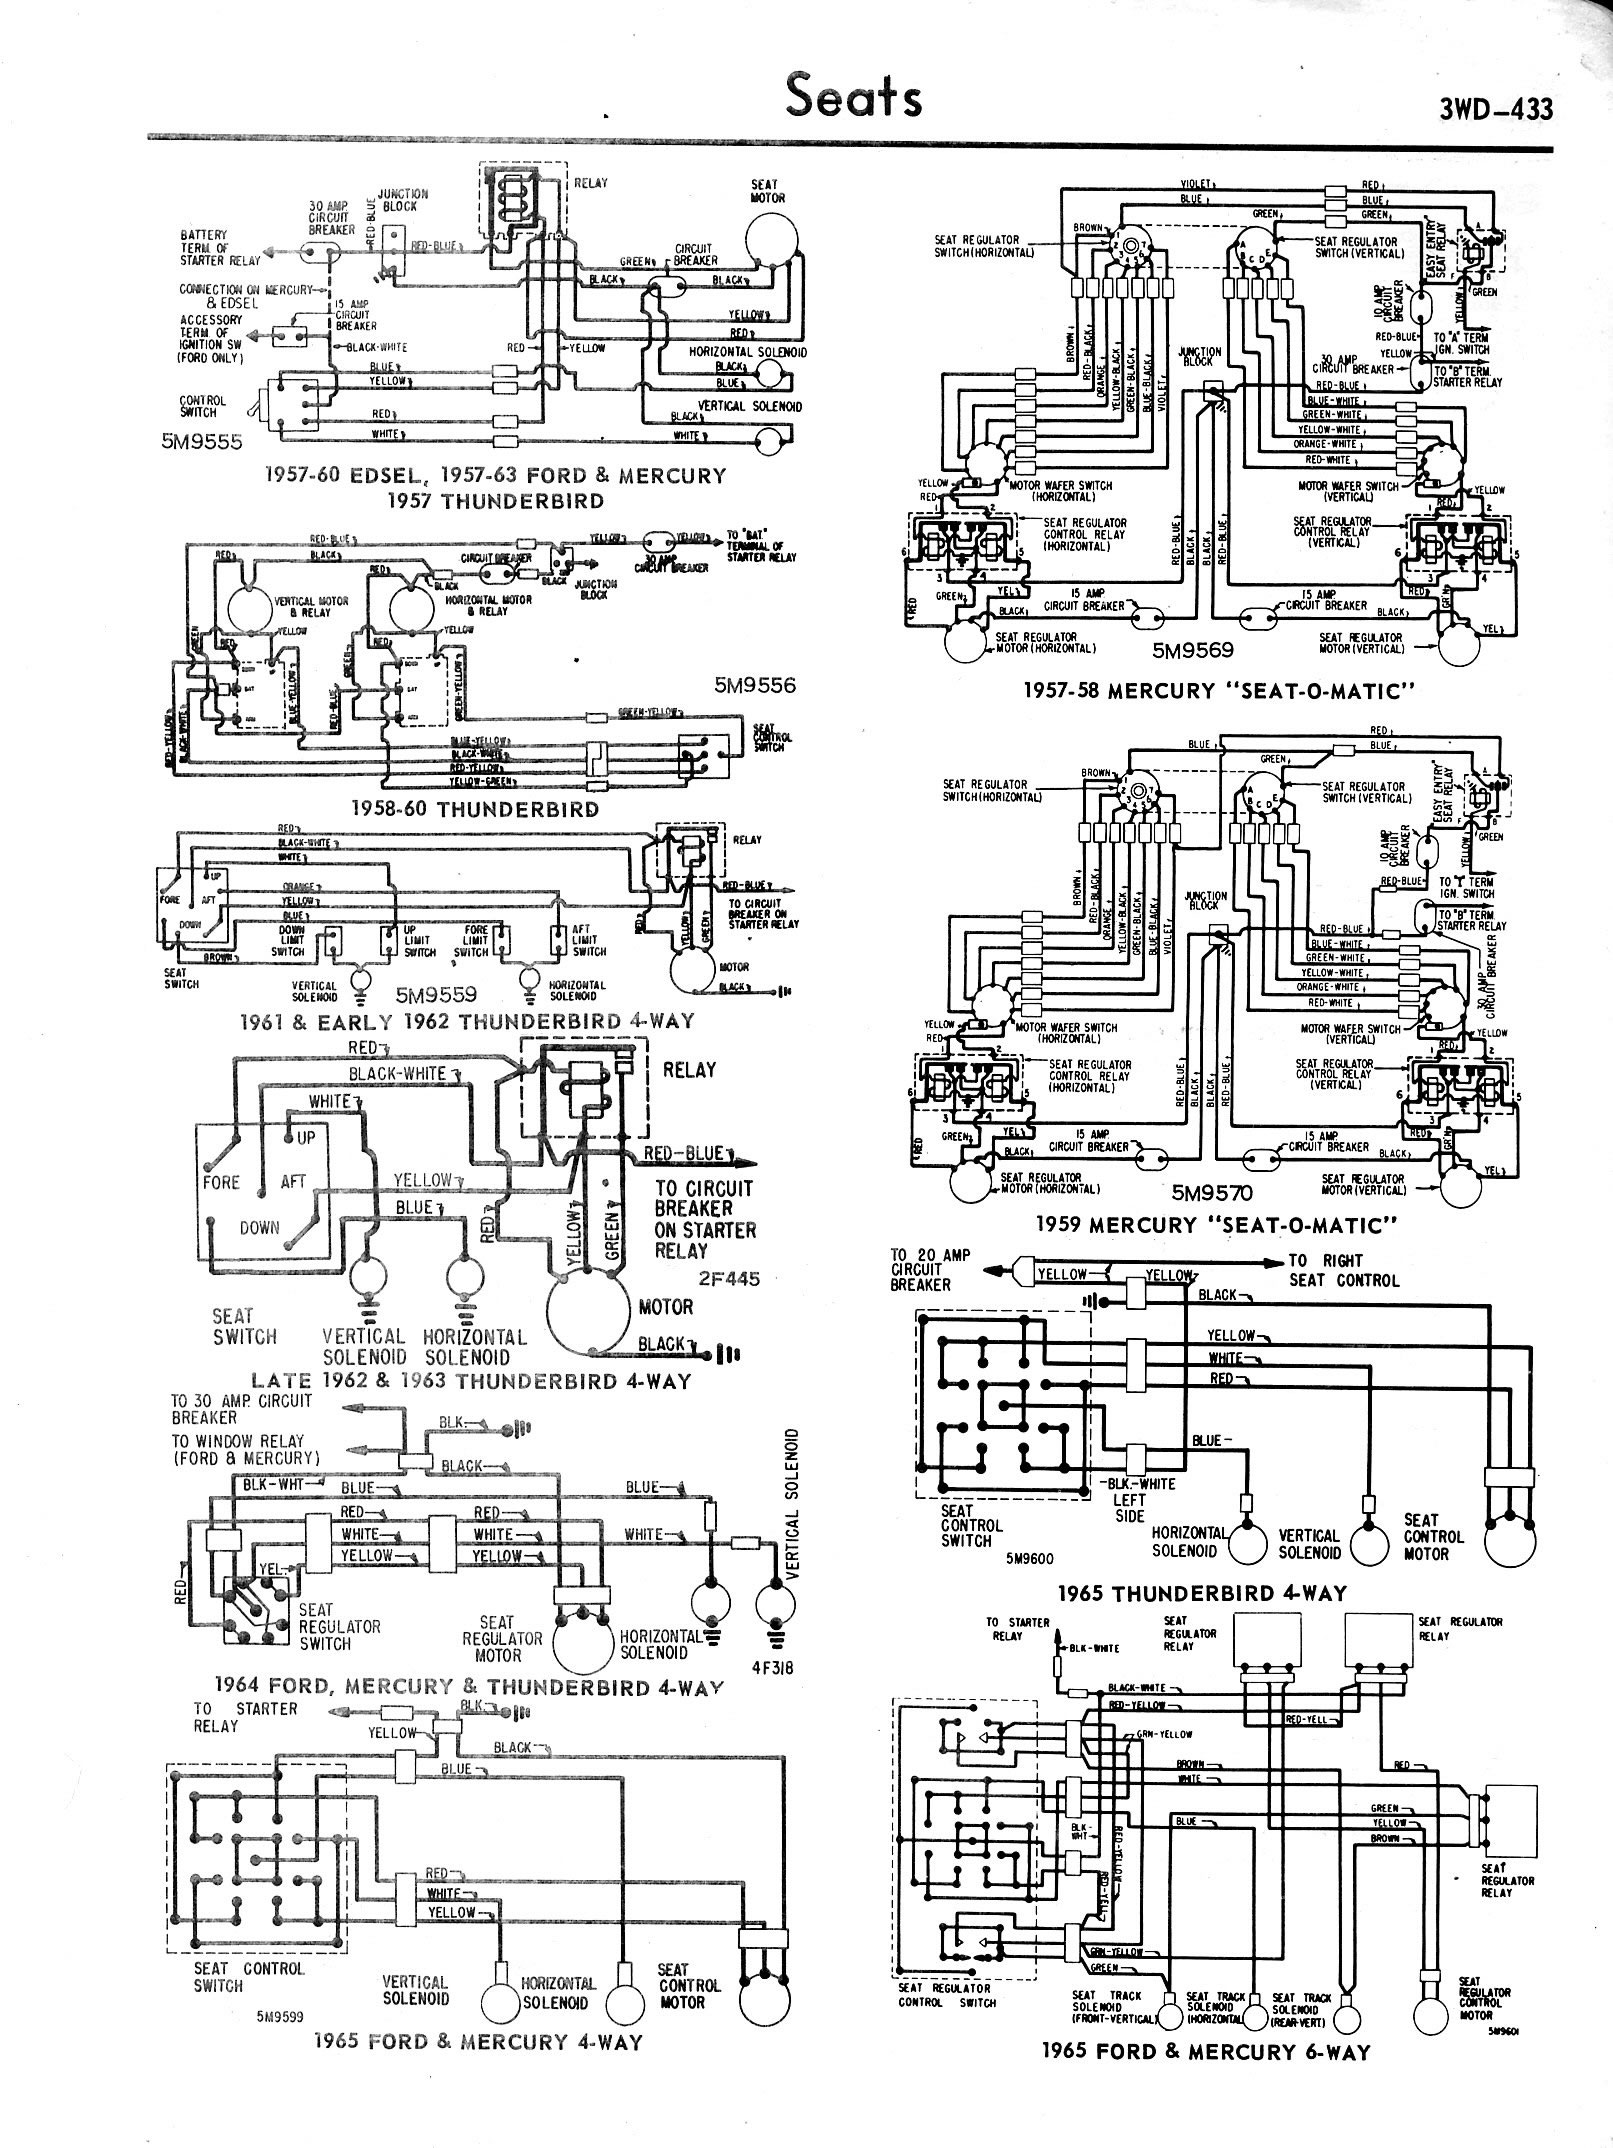 hight resolution of wiring diagram for 1963 ford thunderbird convertible top manual e book wiring diagram for 1963 ford